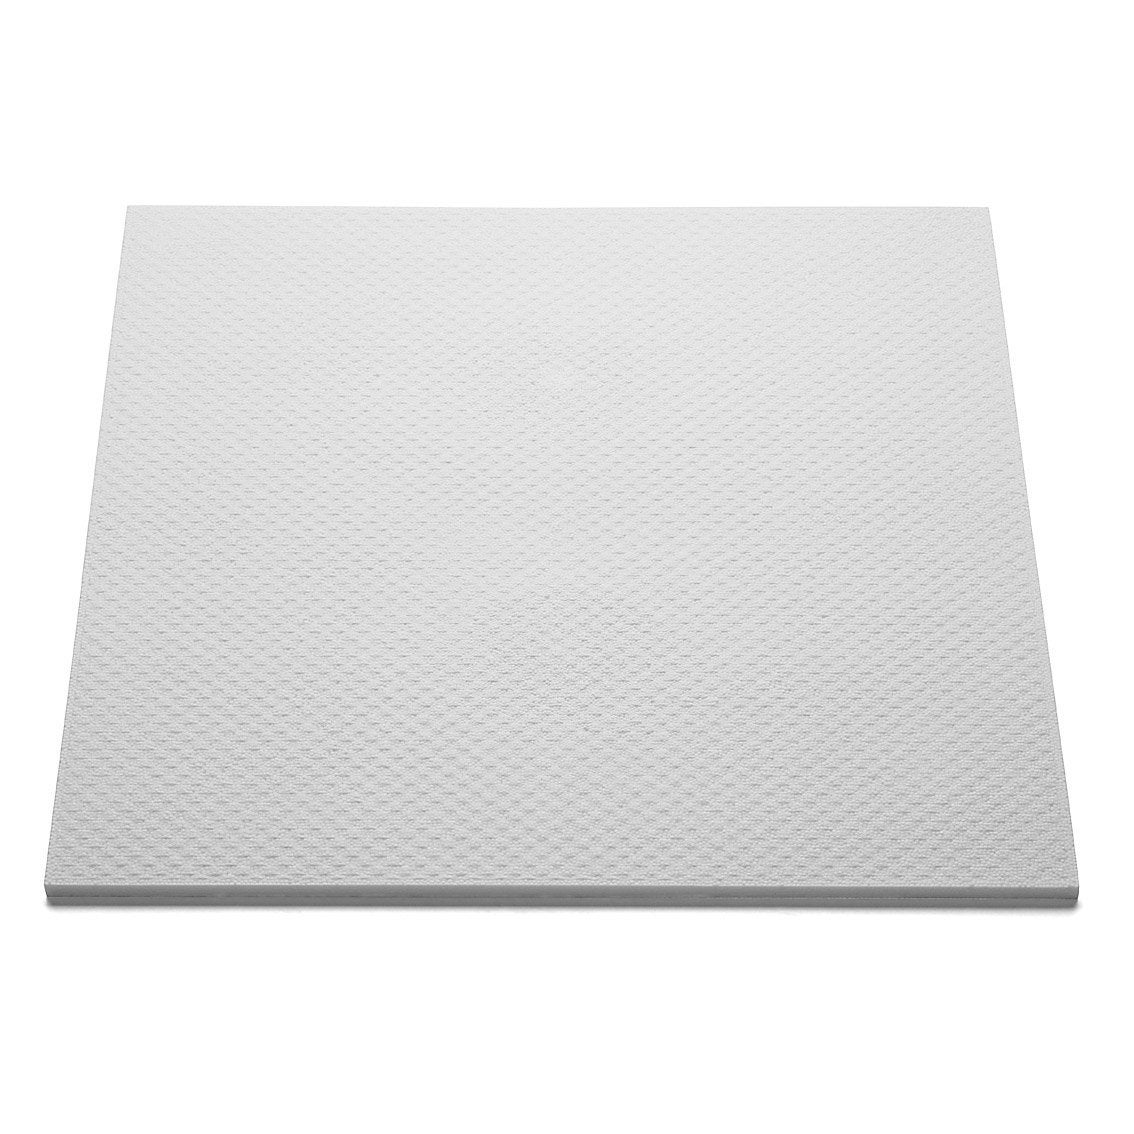 Dalle t 141 50 x 50 cm leroy merlin for Dalles pour faux plafond suspendu